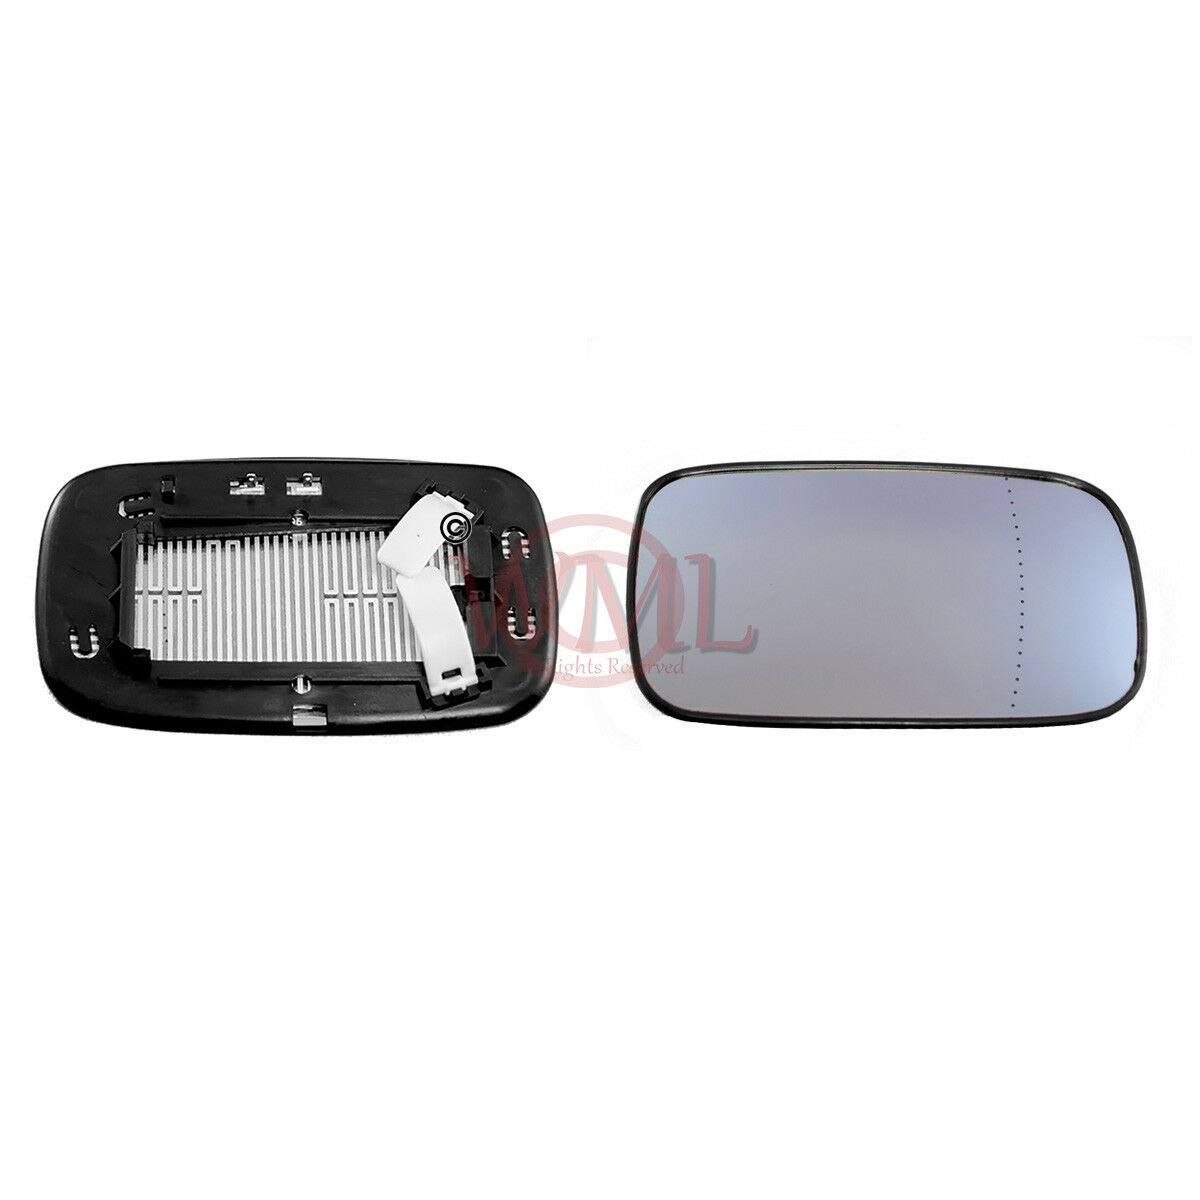 2004 to 2006 Volvo S40 Wing Mirror Glass Left Hand side Aspheric